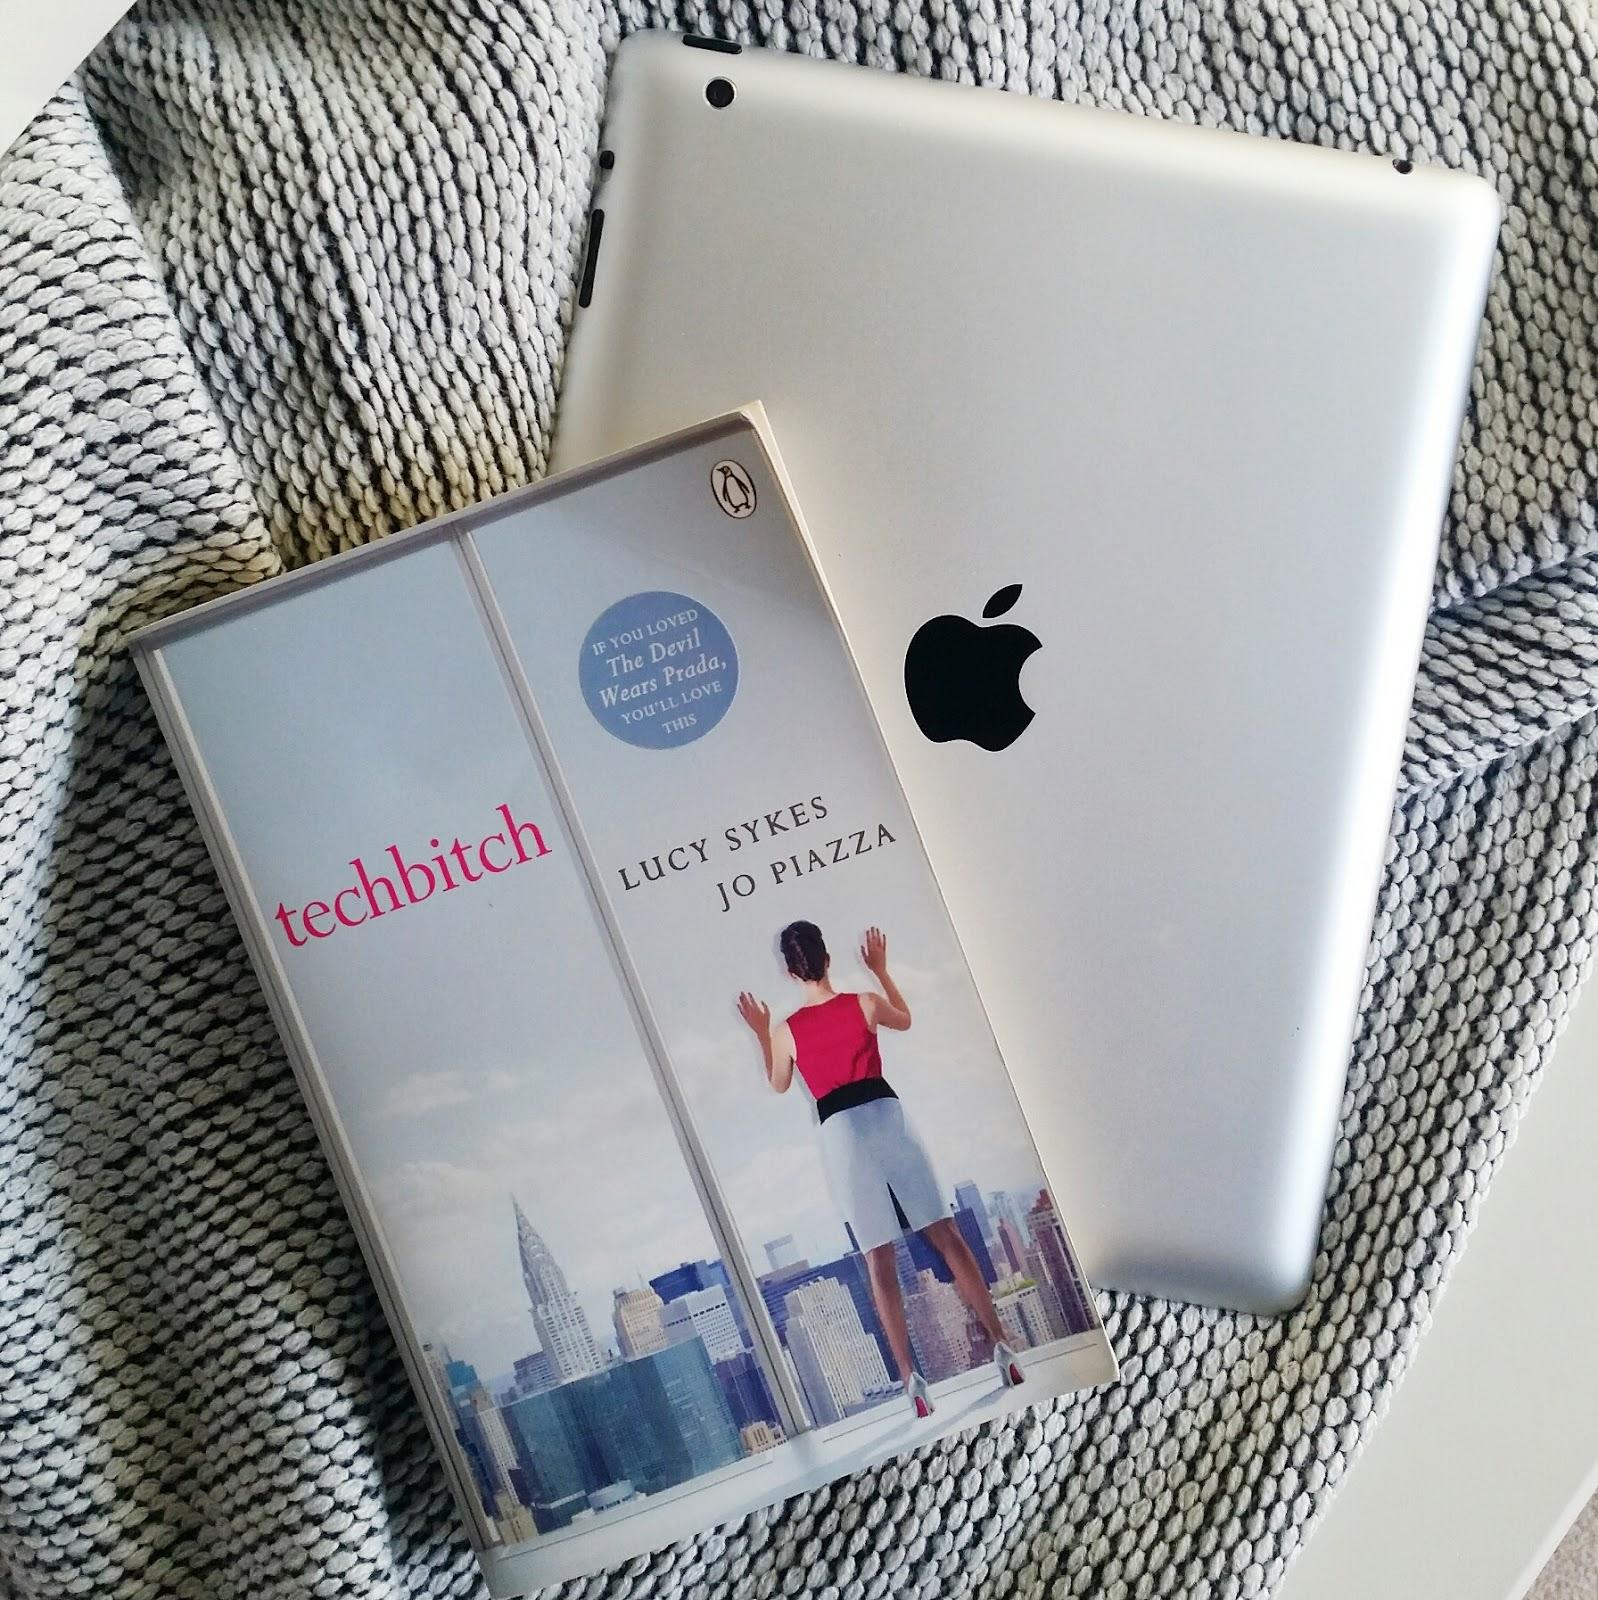 TECHBITCH BOOK BY LUCY SYKES AND JO PIAZZA